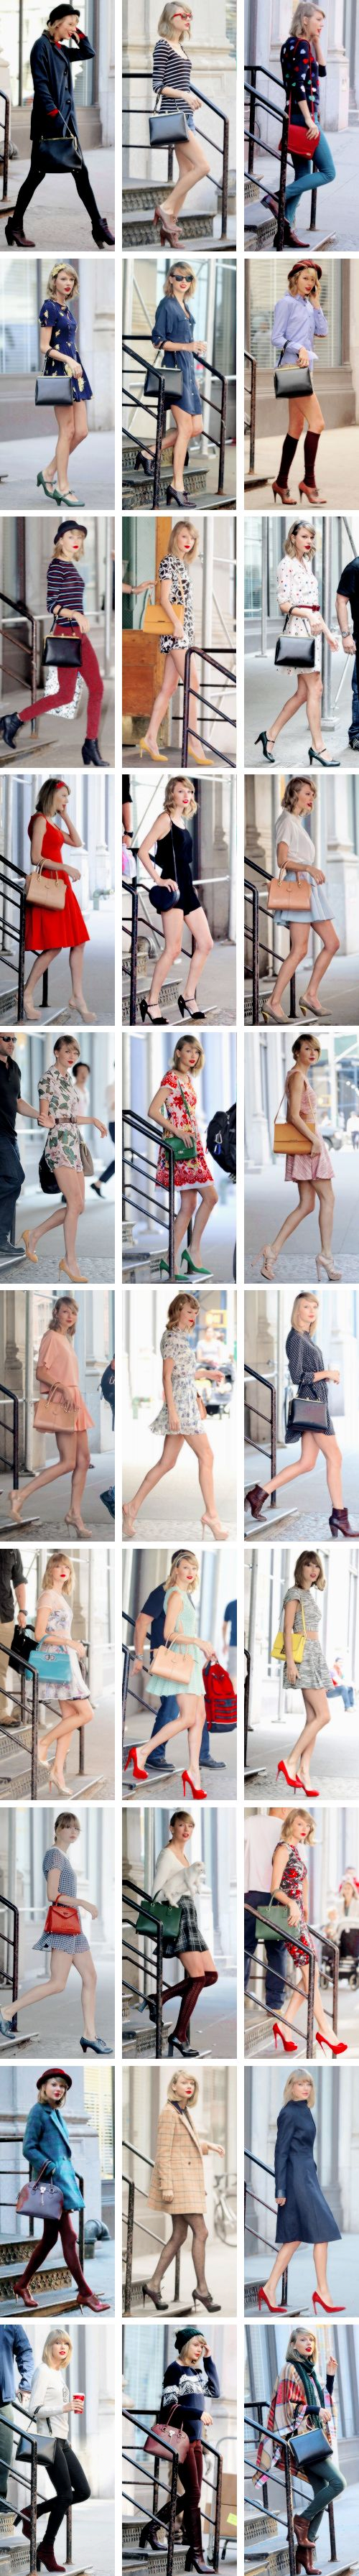 A Taylor Swift fashion collage ♥♥♥♥♥